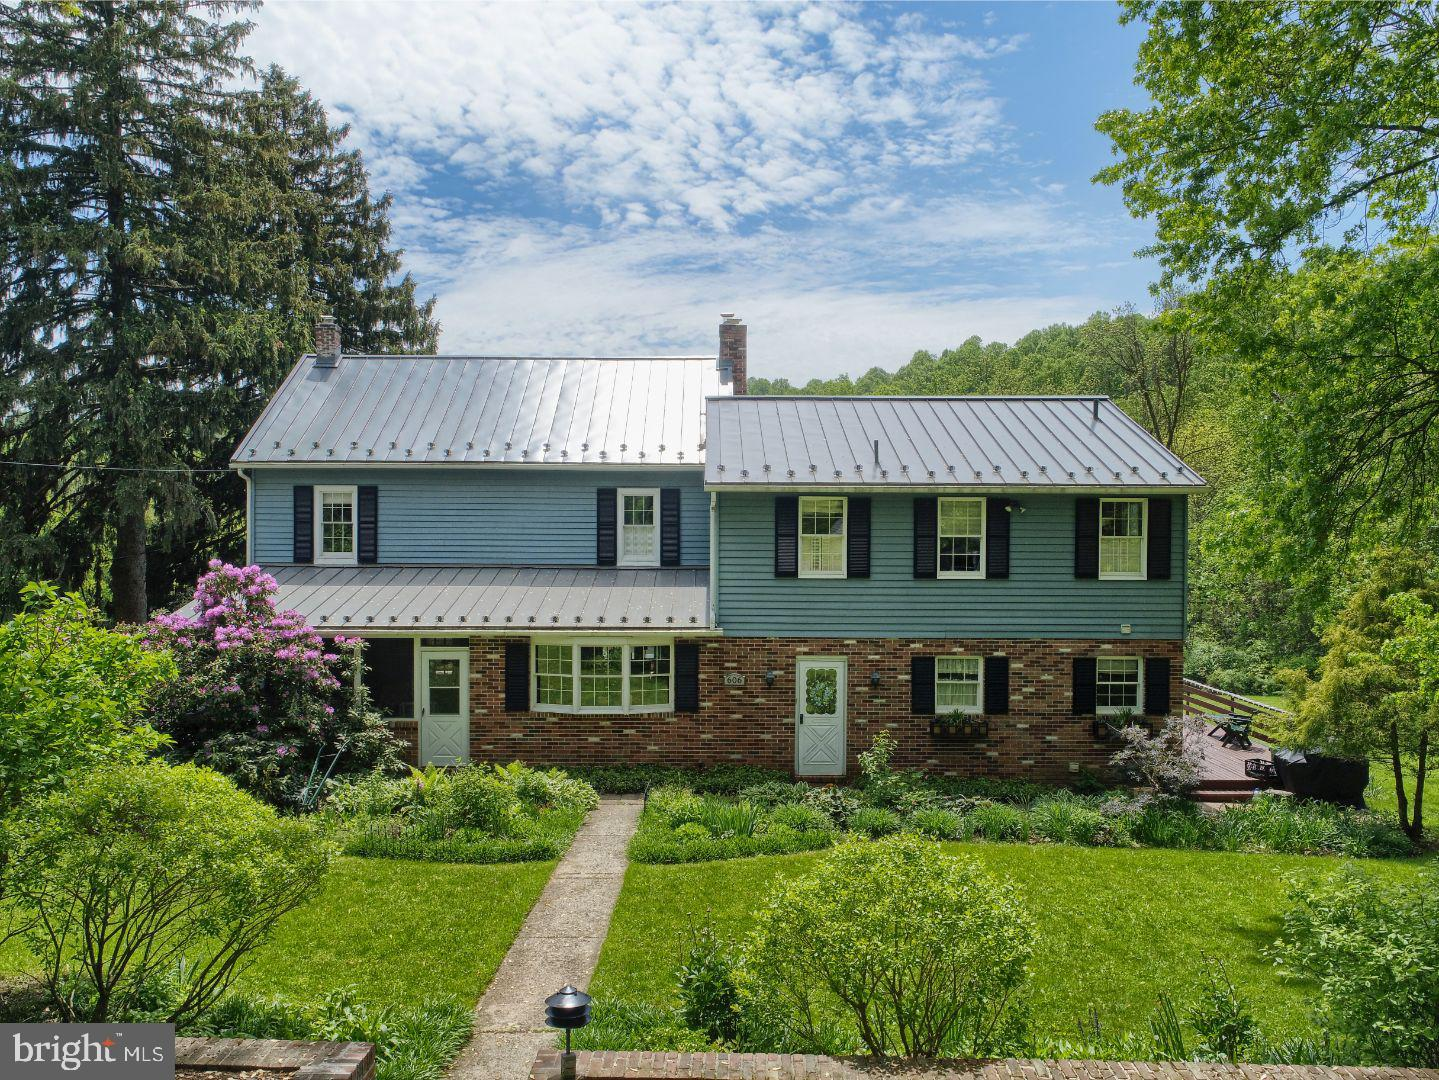 Homes with In-Law Suites in Berks County presented by The